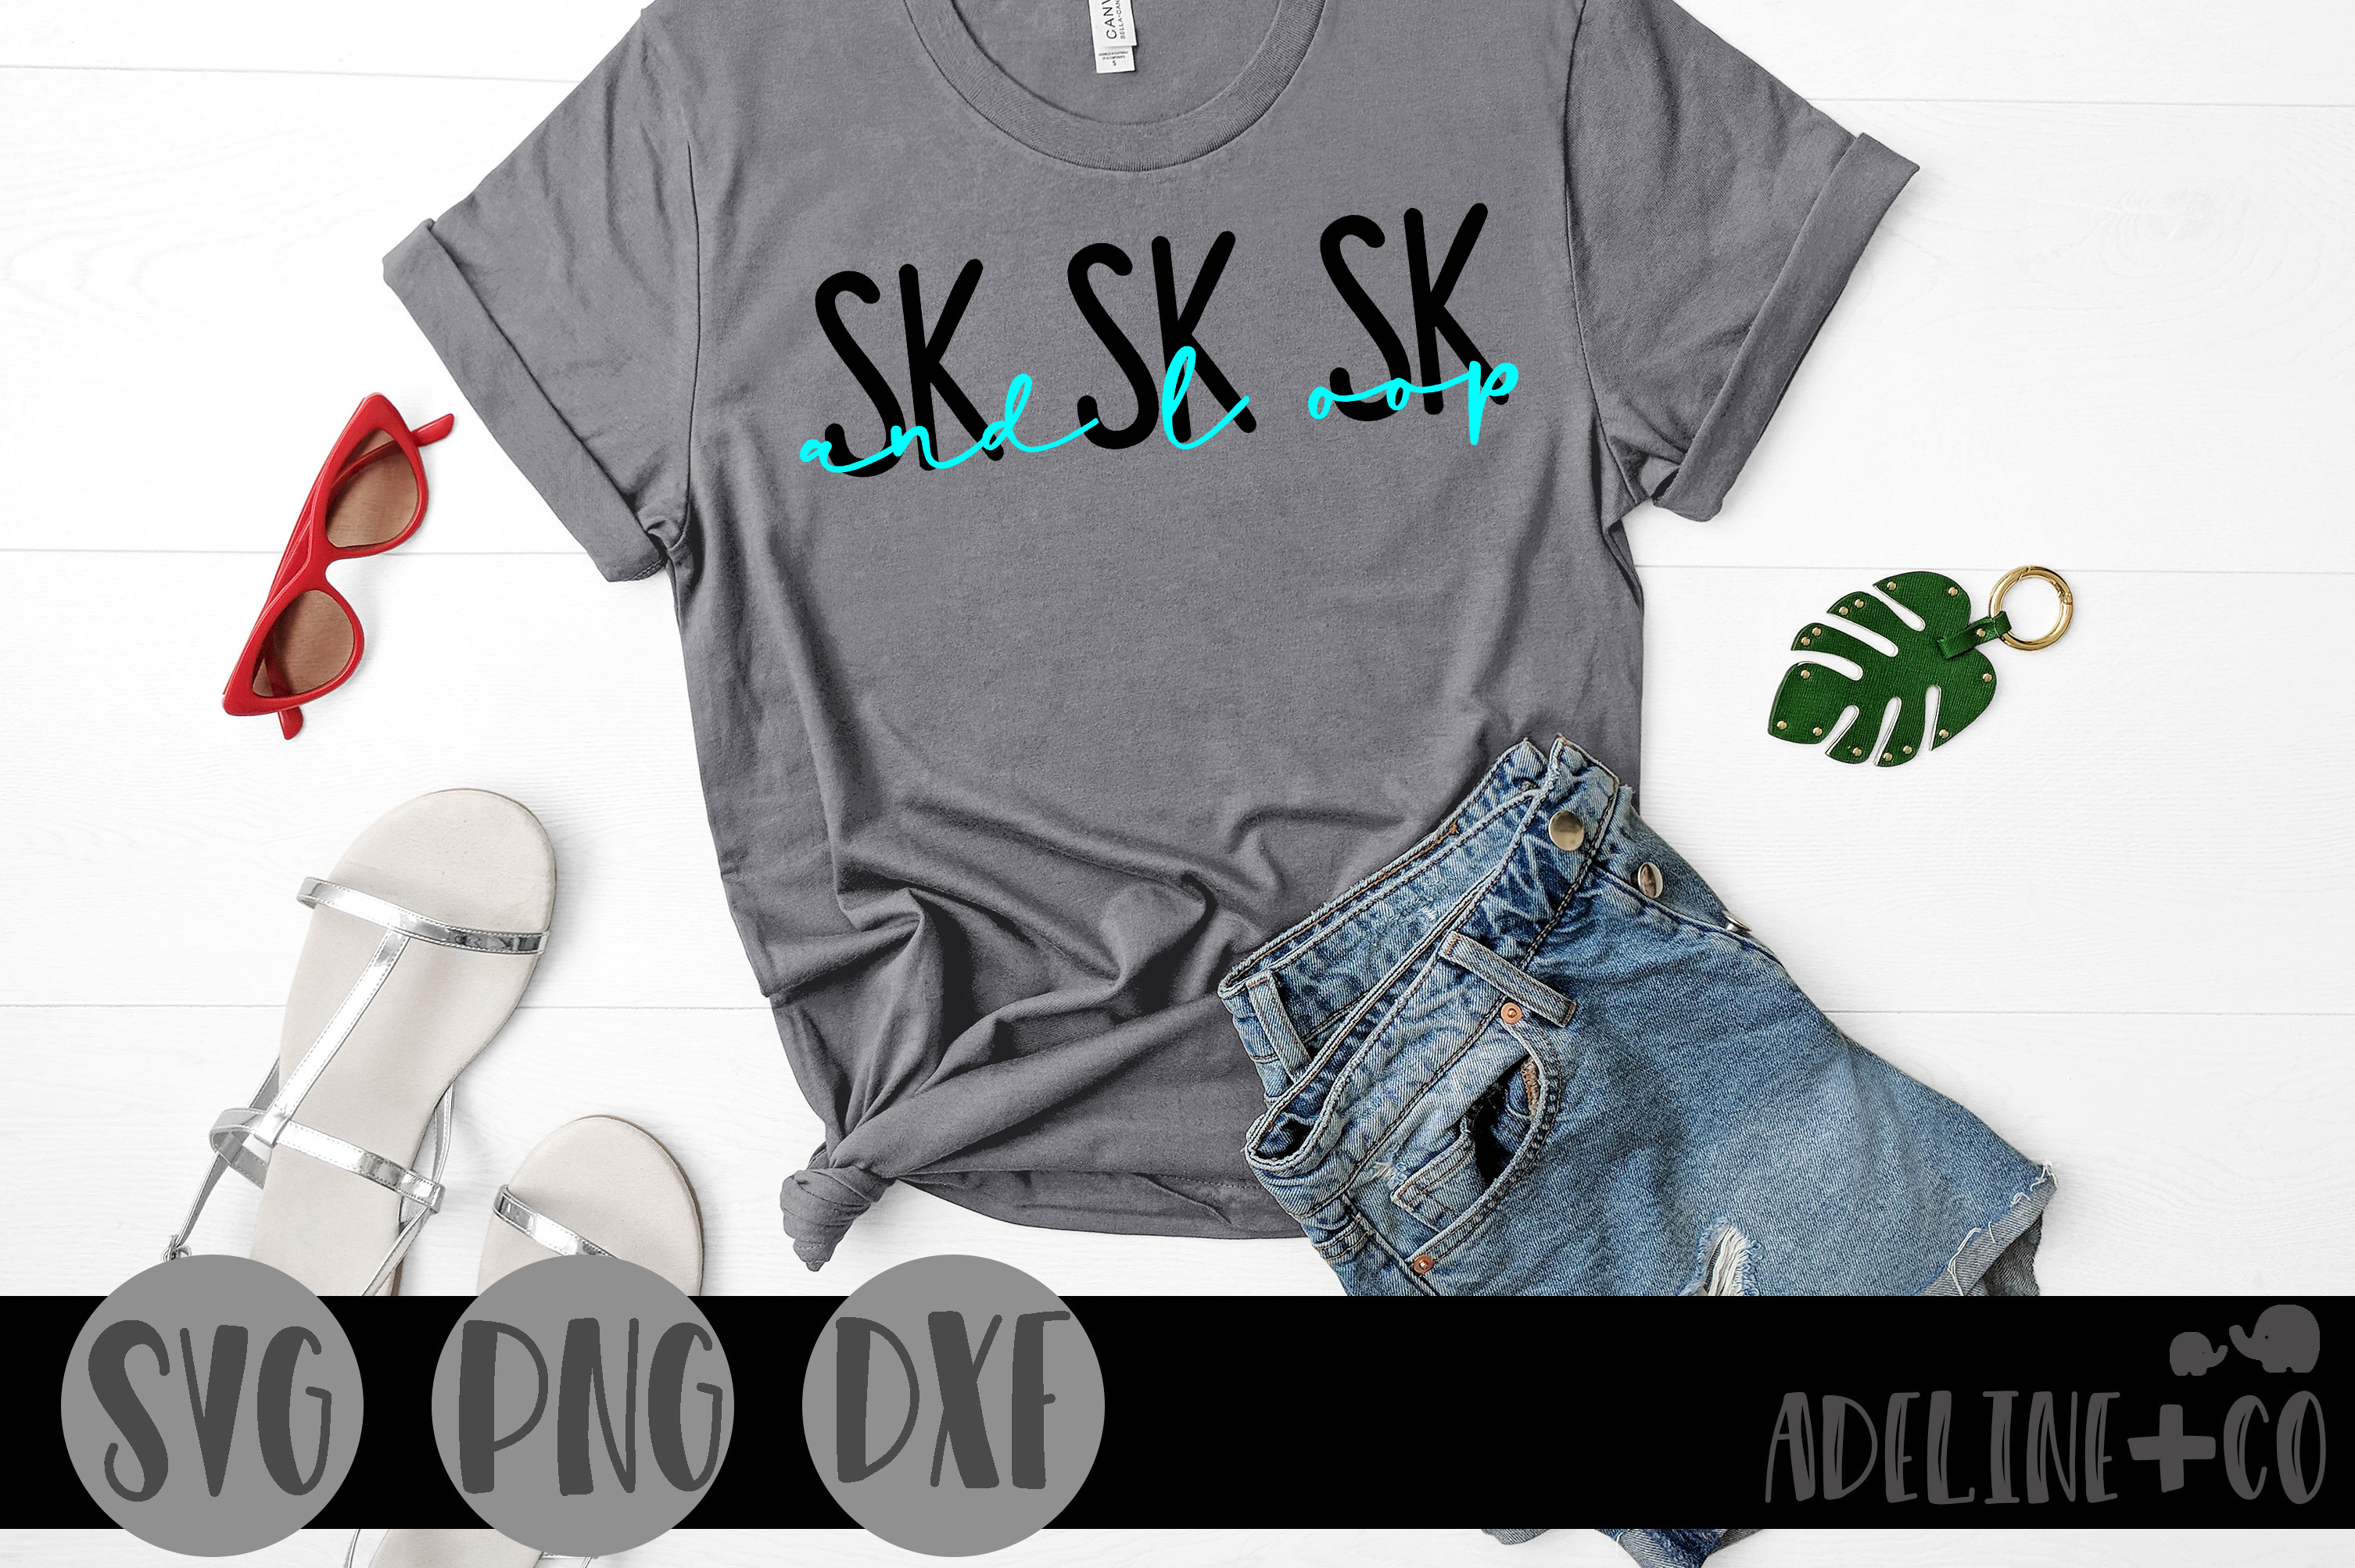 Download Free Sk Sk Sk And I Oop Graphic By Adelinenco Creative Fabrica for Cricut Explore, Silhouette and other cutting machines.